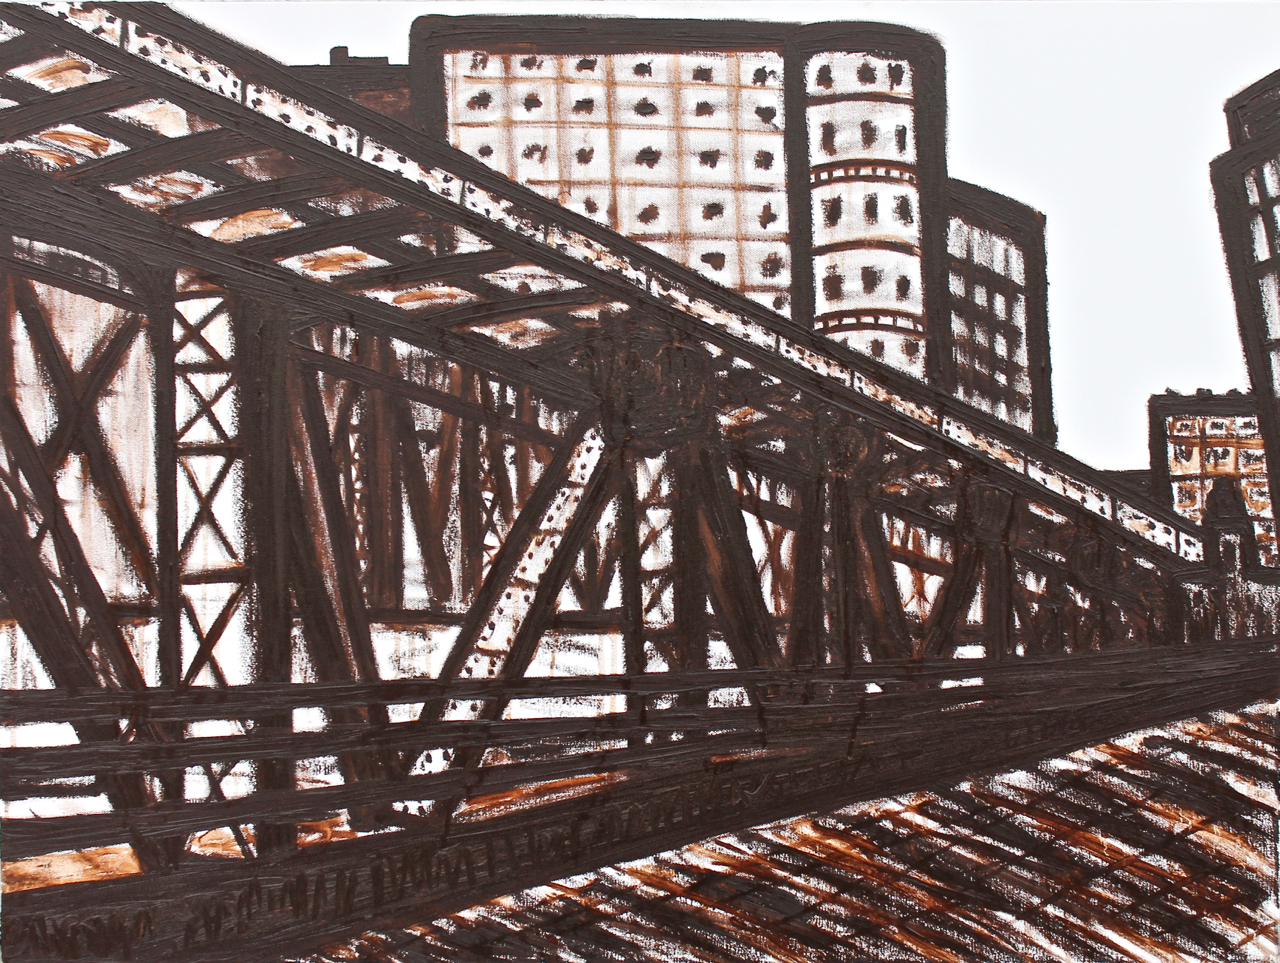 Wells St. Tracks, oil on canvas, 30x40, 2017, SOLD